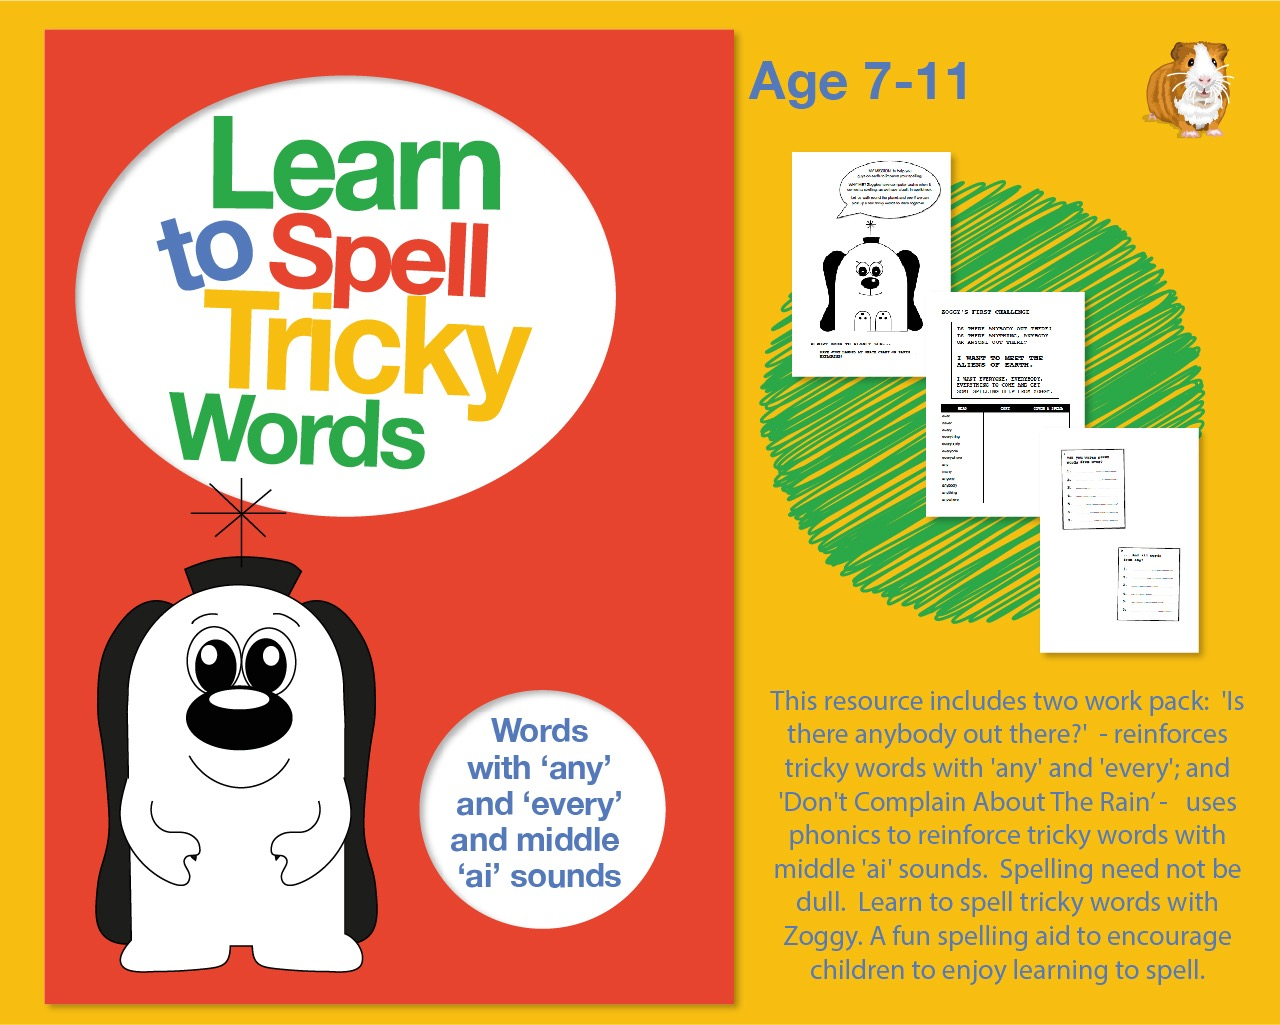 Spell Tricky Words with 'any' and 'every' And Middle 'ai' Sounds (7-11 years)